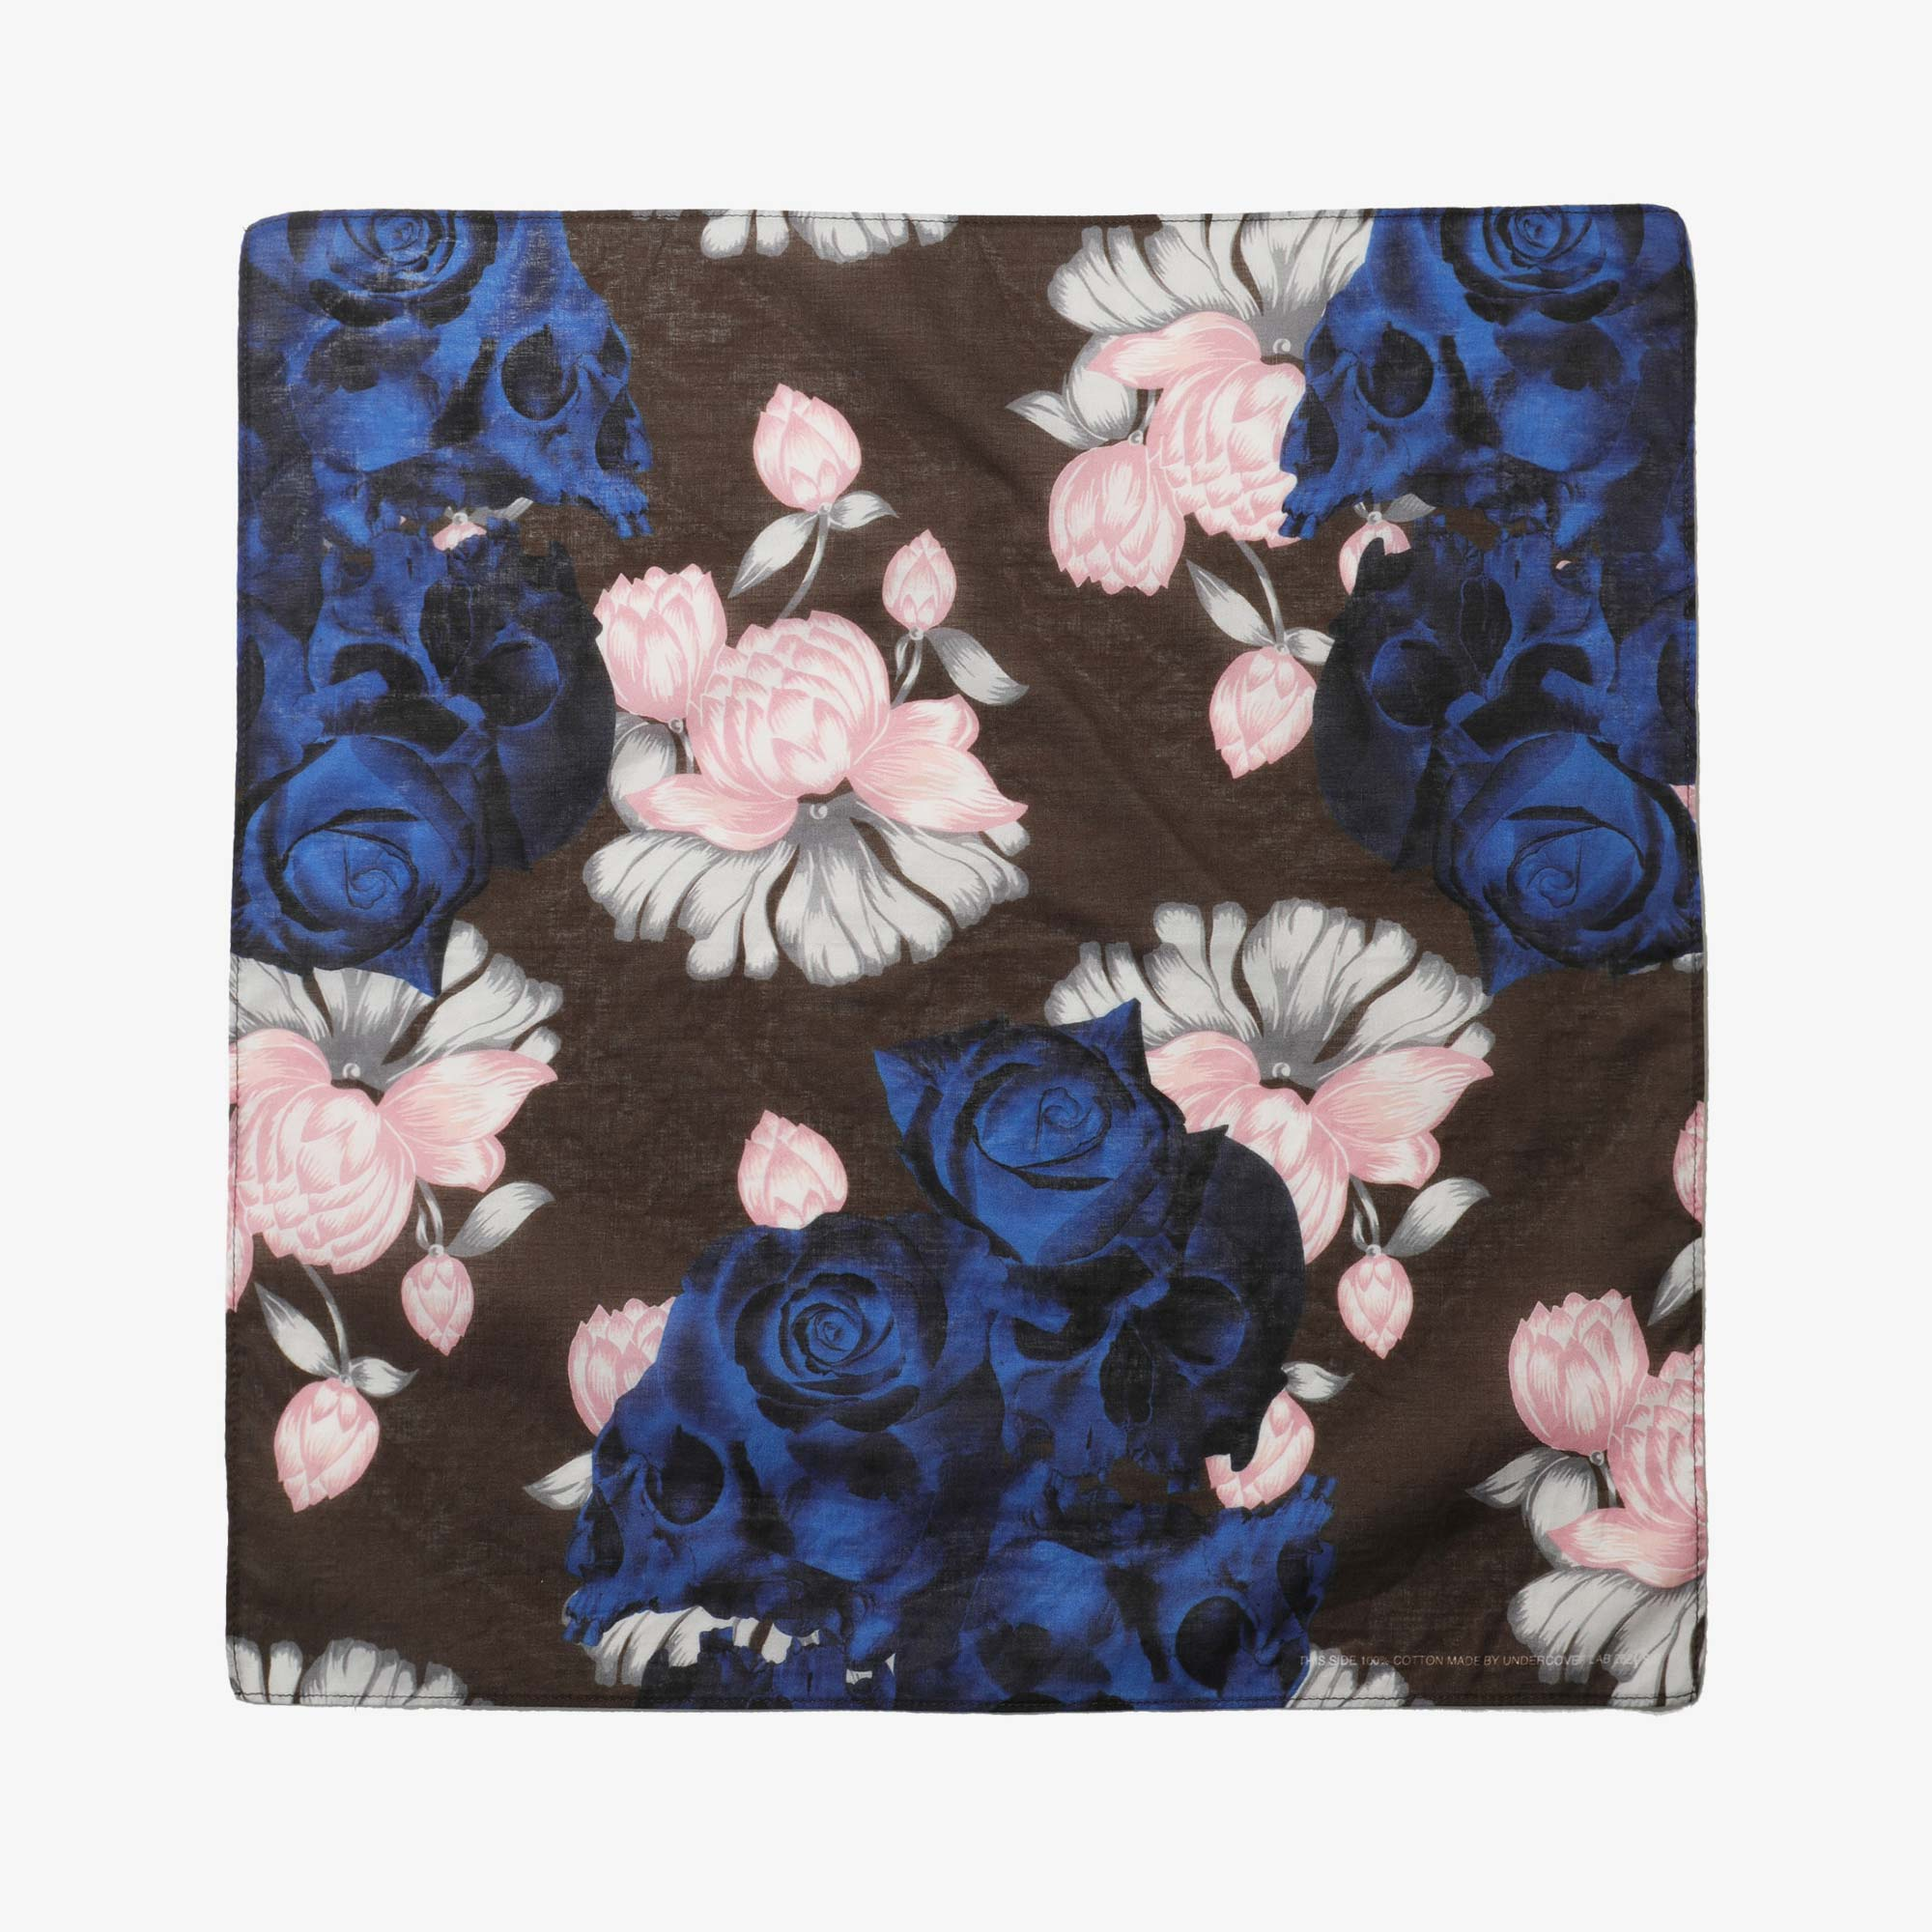 Undercover Roses Skull Pocket Square UC1A4M01-3 - Brown Base 1